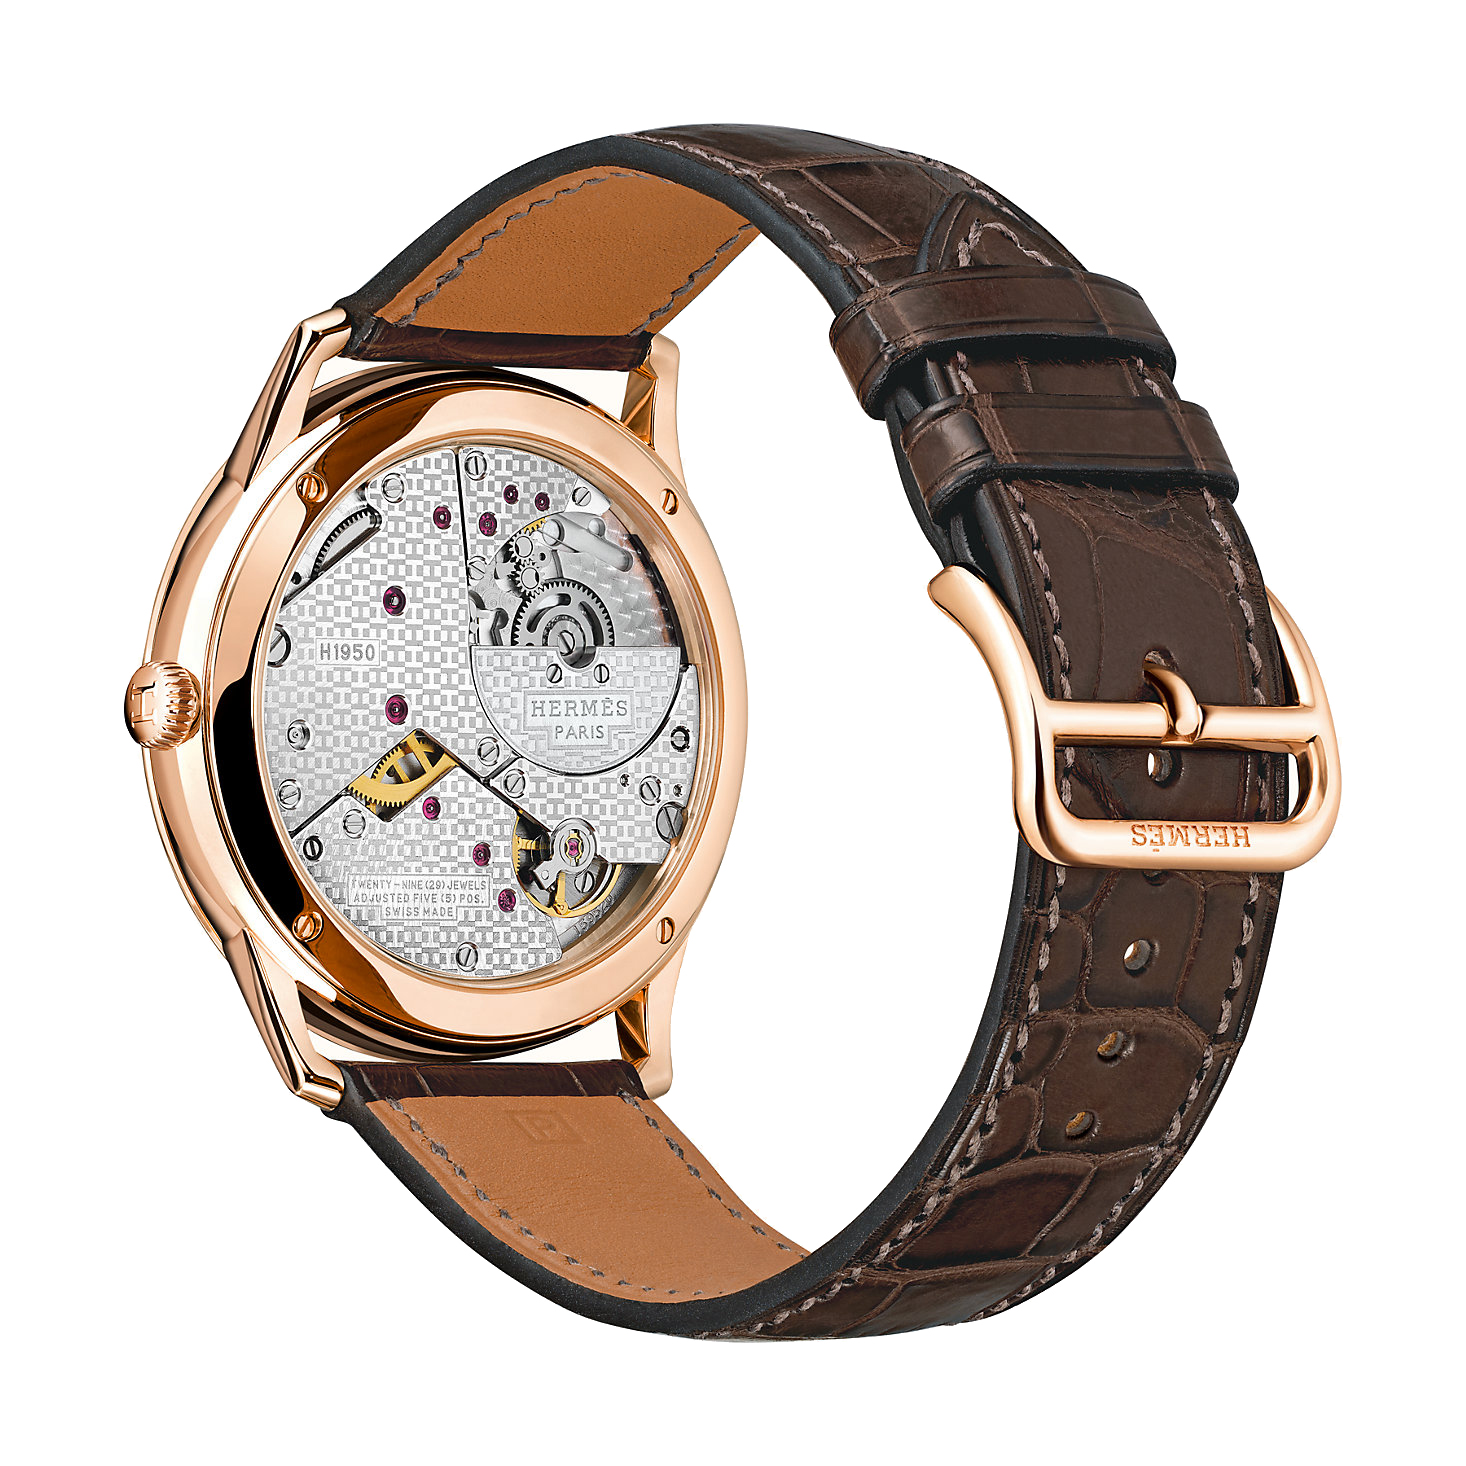 montre-slim-d-hermes-395mm--041762WW00-back-3-300-0-1466-1466_b